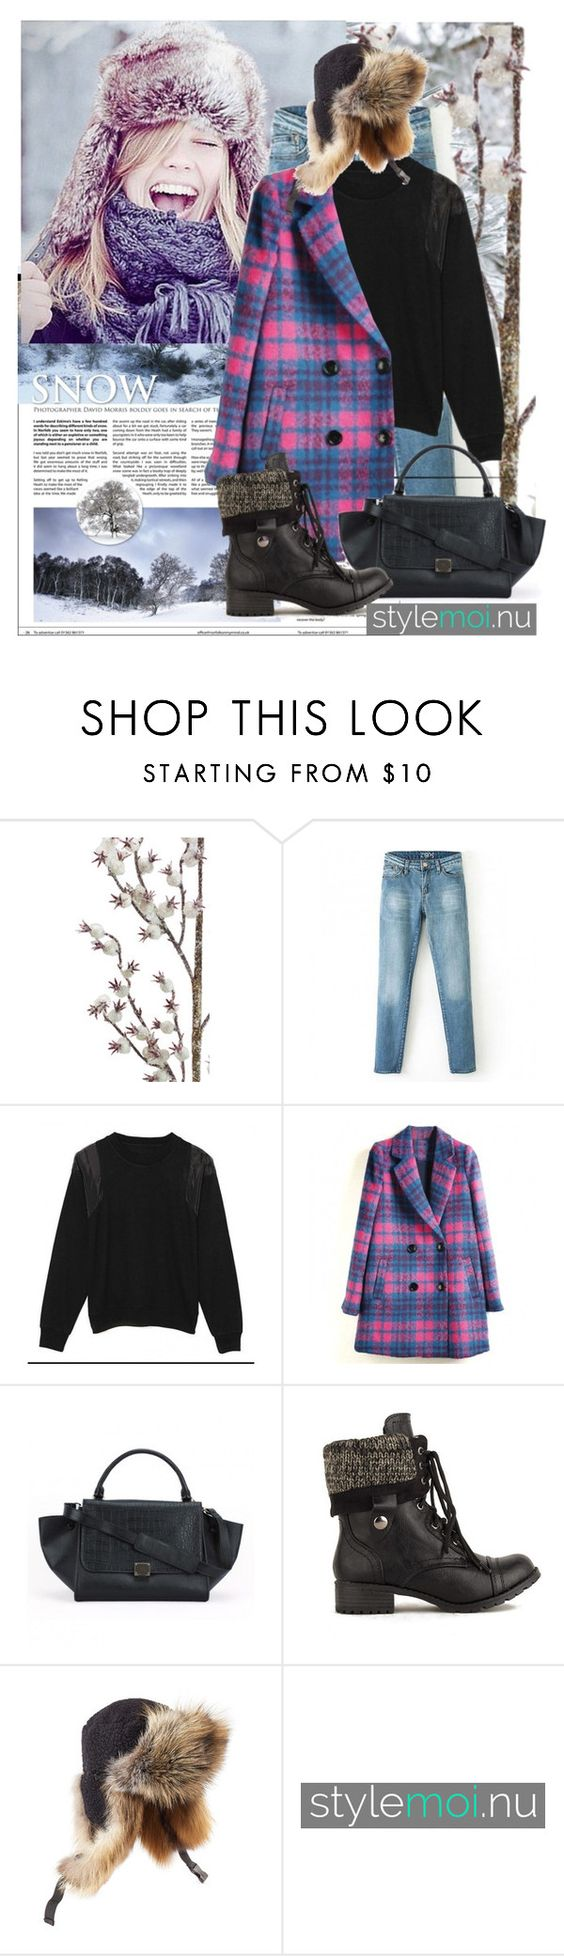 """""""CHRISTMAS WITH STYLEMOI"""" by biljana-miric-ex-tomic ❤ liked on Polyvore featuring Preen"""